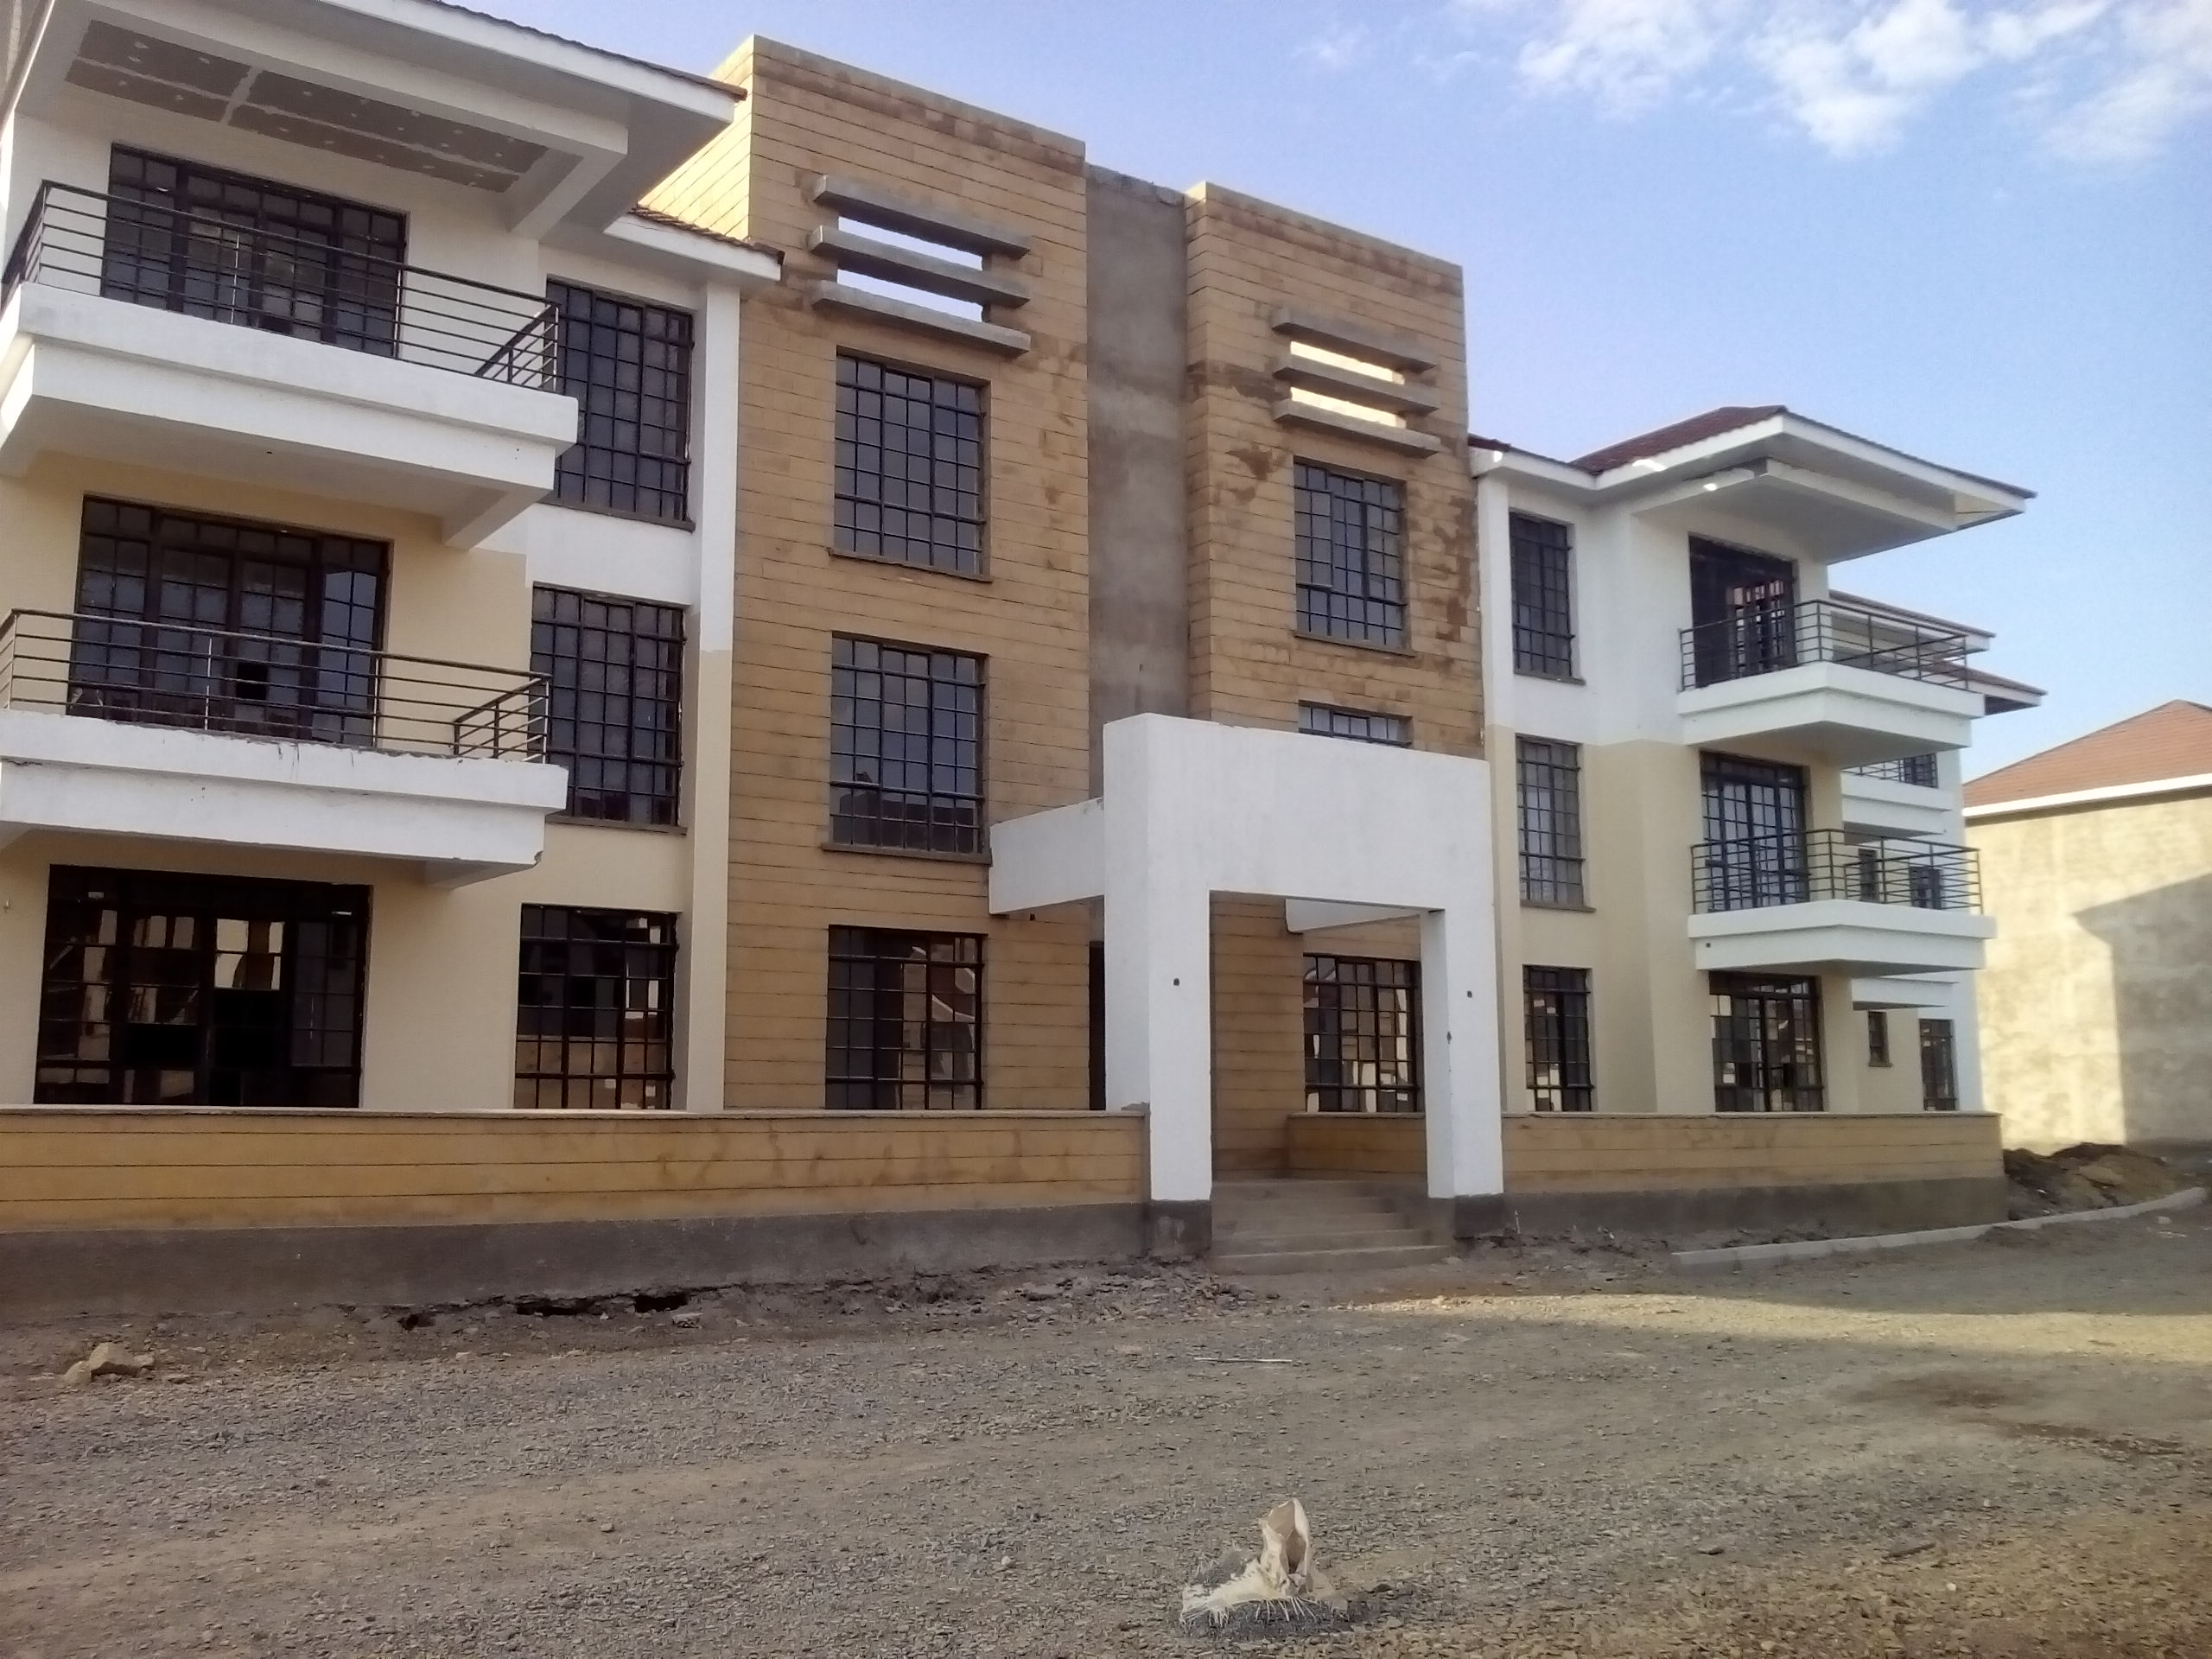 Apartments for Sale in Kitengela Kenya